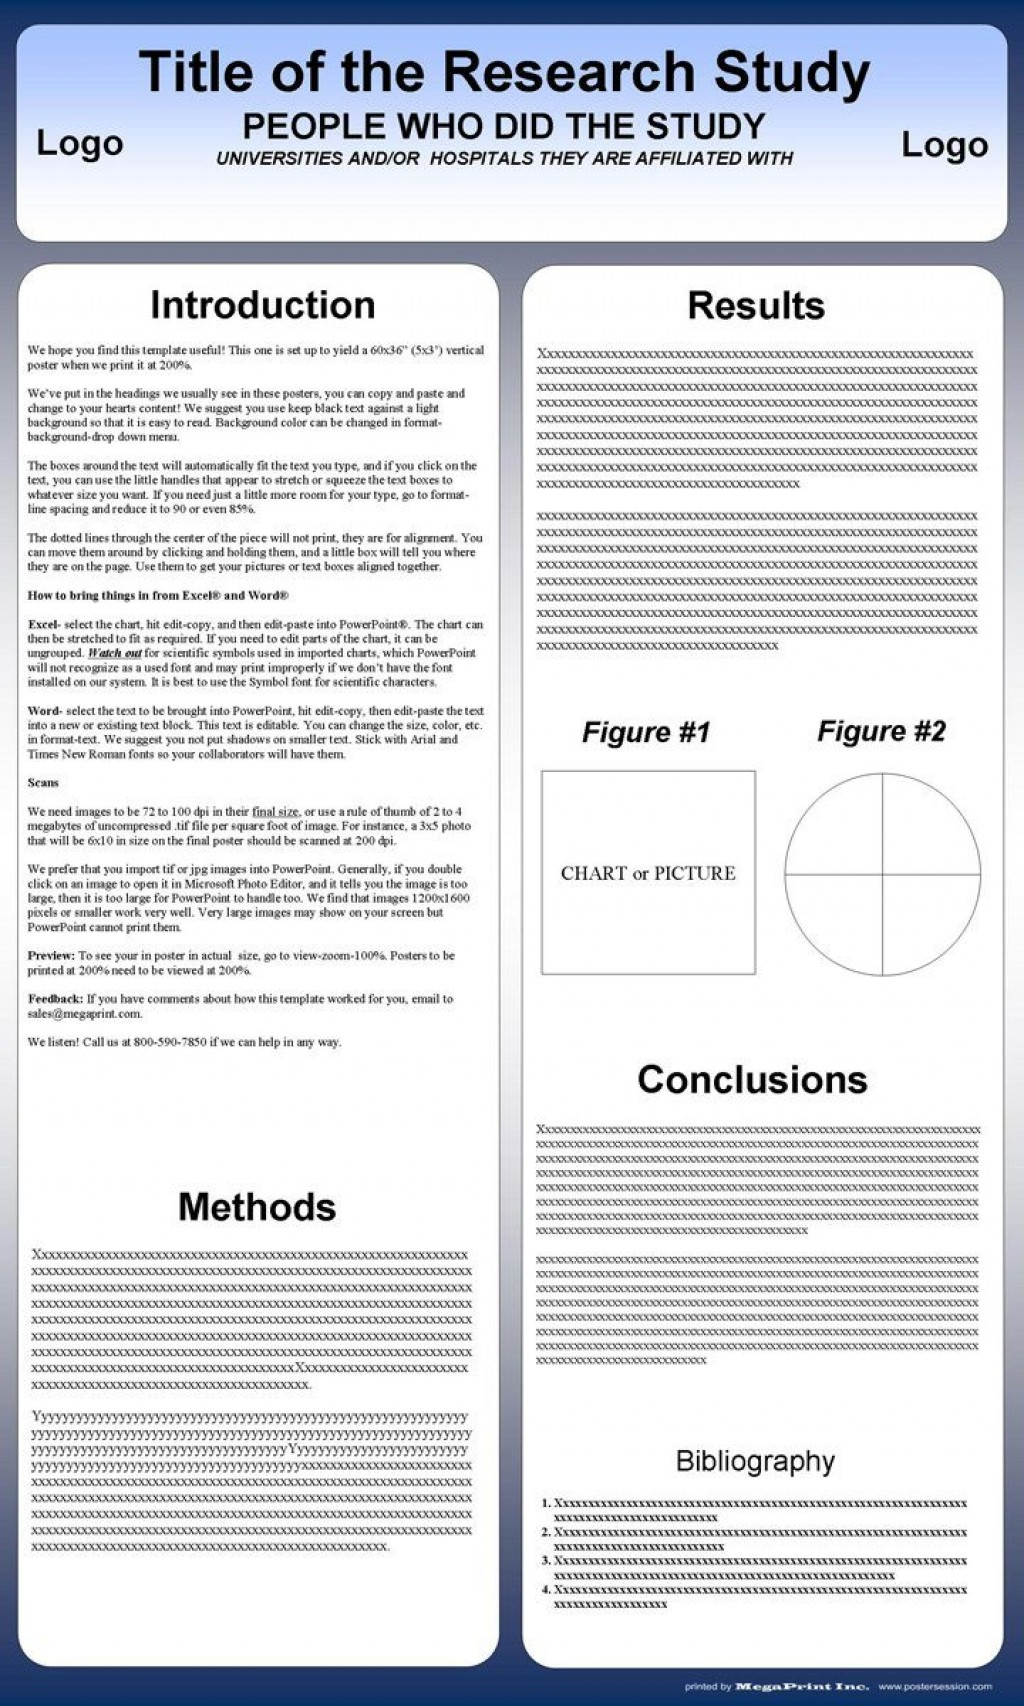 001 Excellent Poster Presentation Template Free Download Design  1m X A0Large